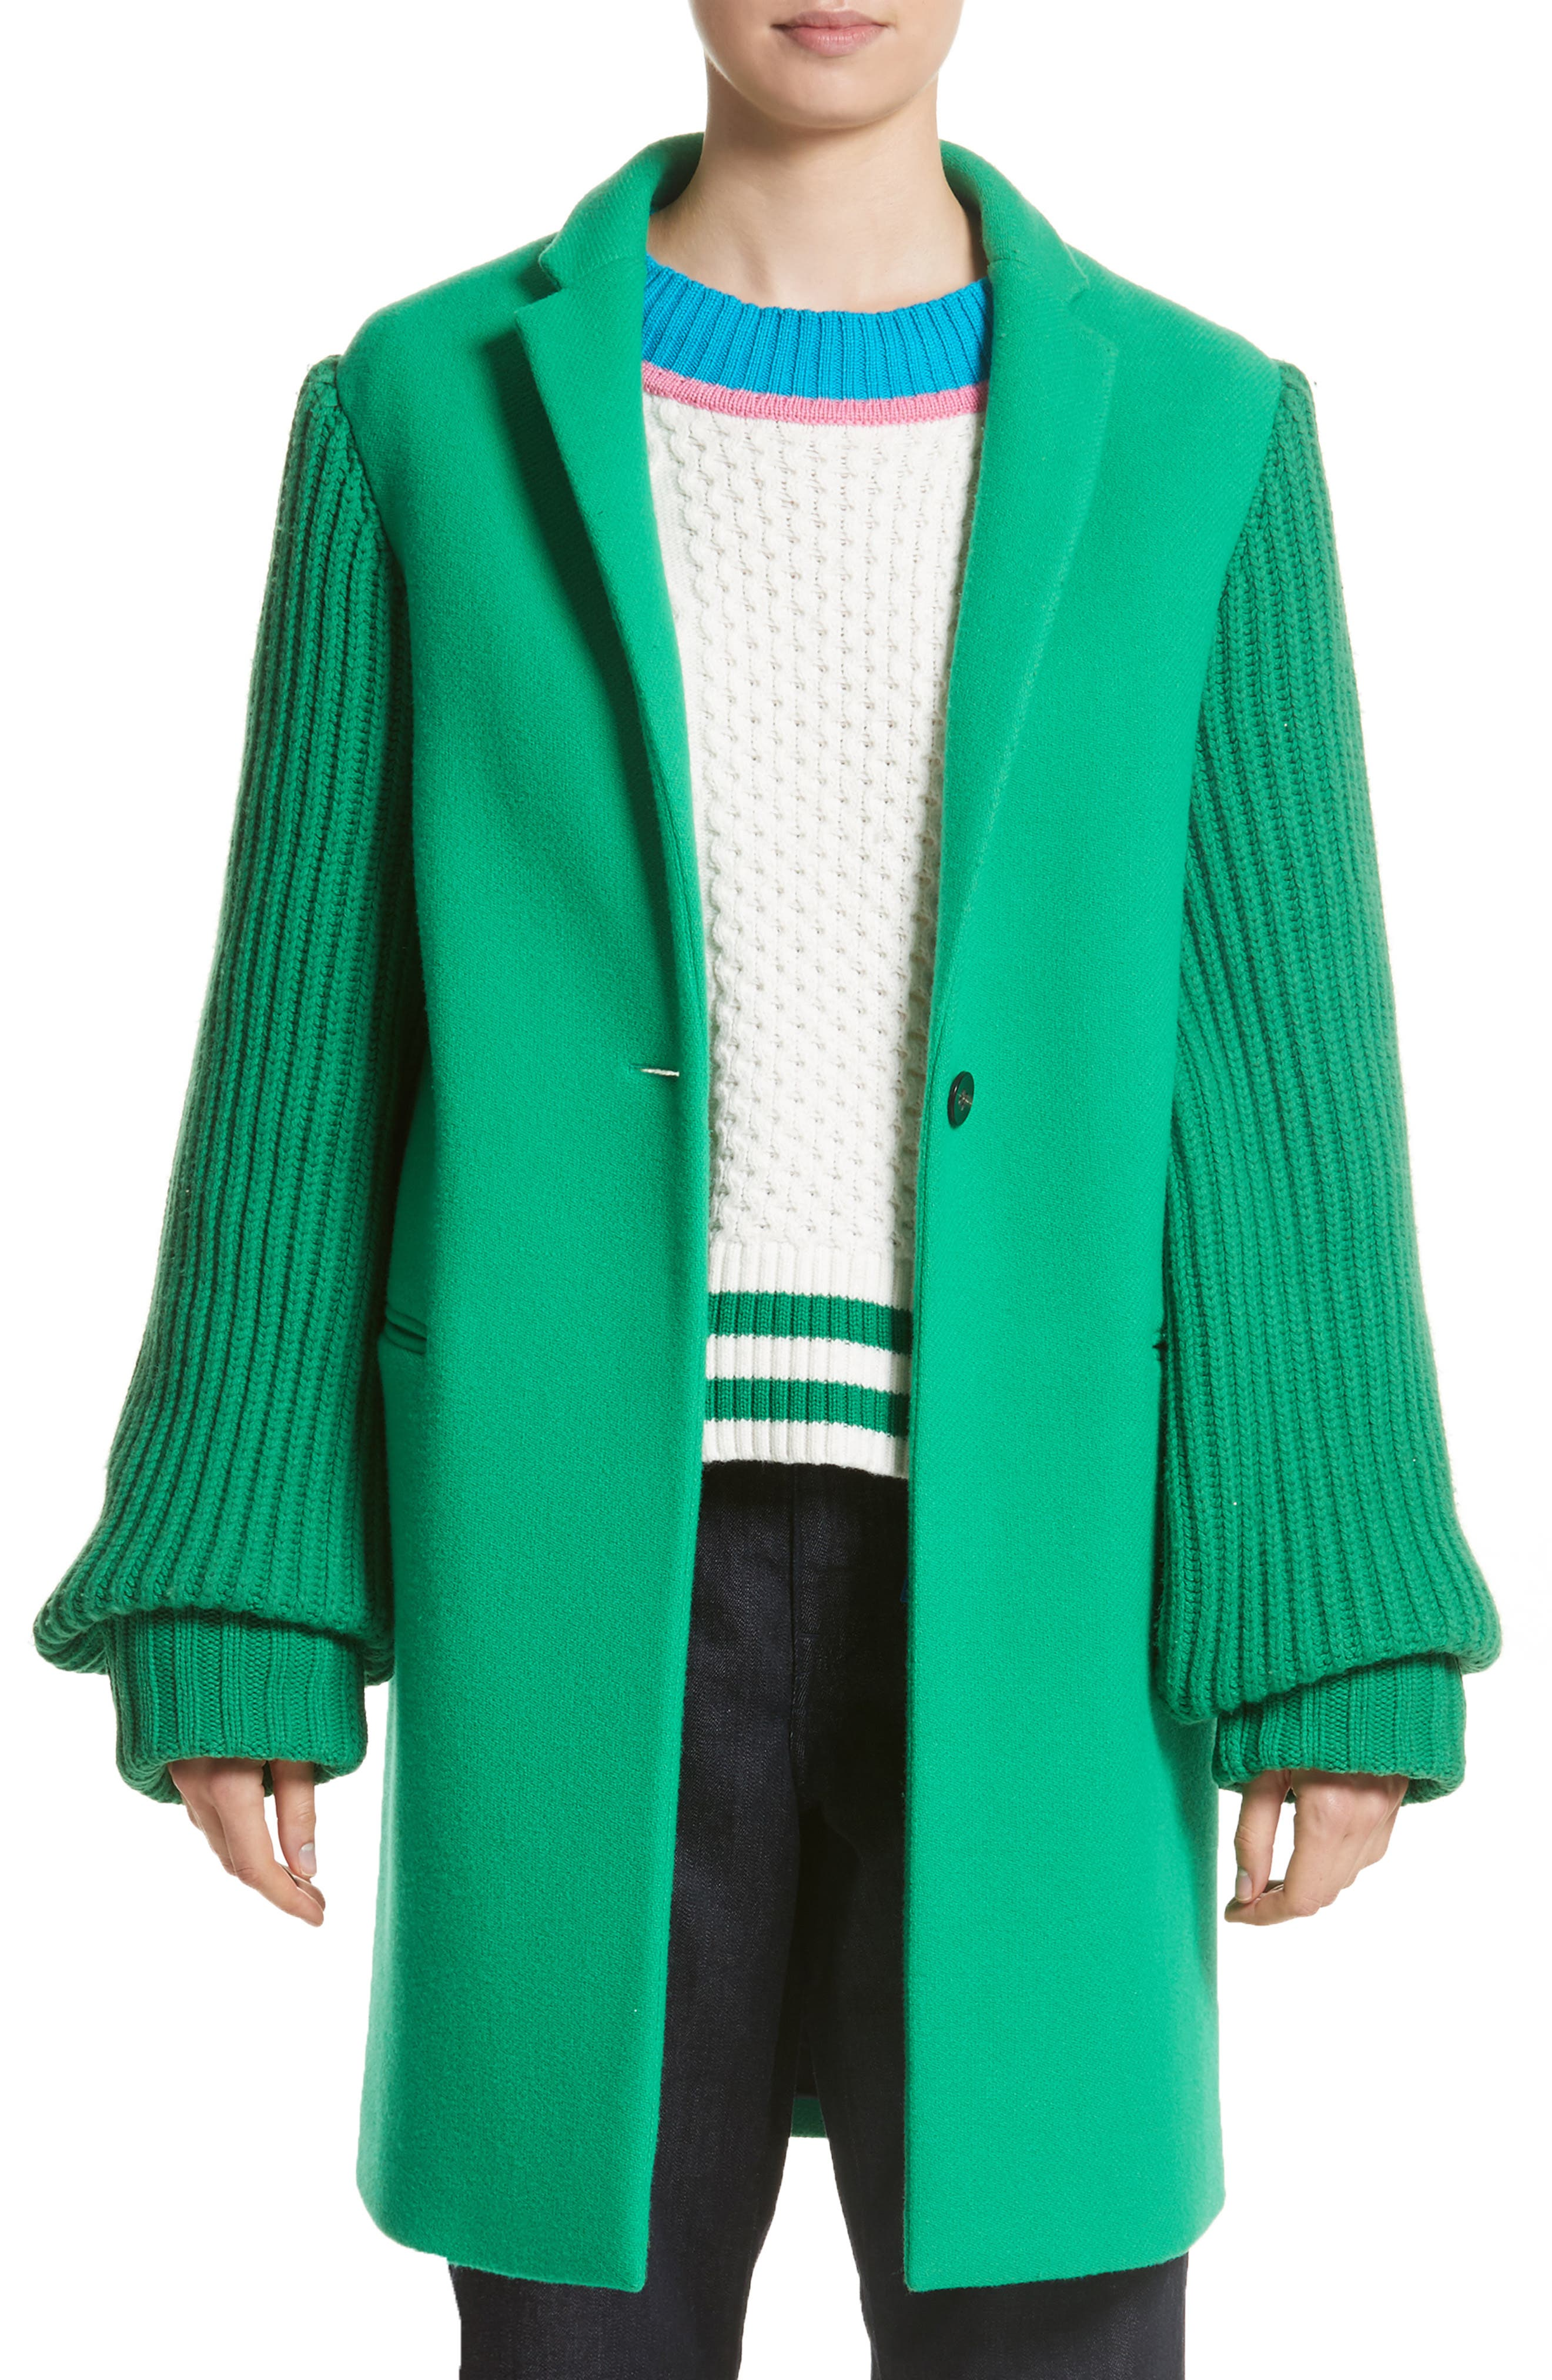 Alternate Image 1 Selected - Mira Mikati Ask Me Later Embroidered Knit Sleeve Coat